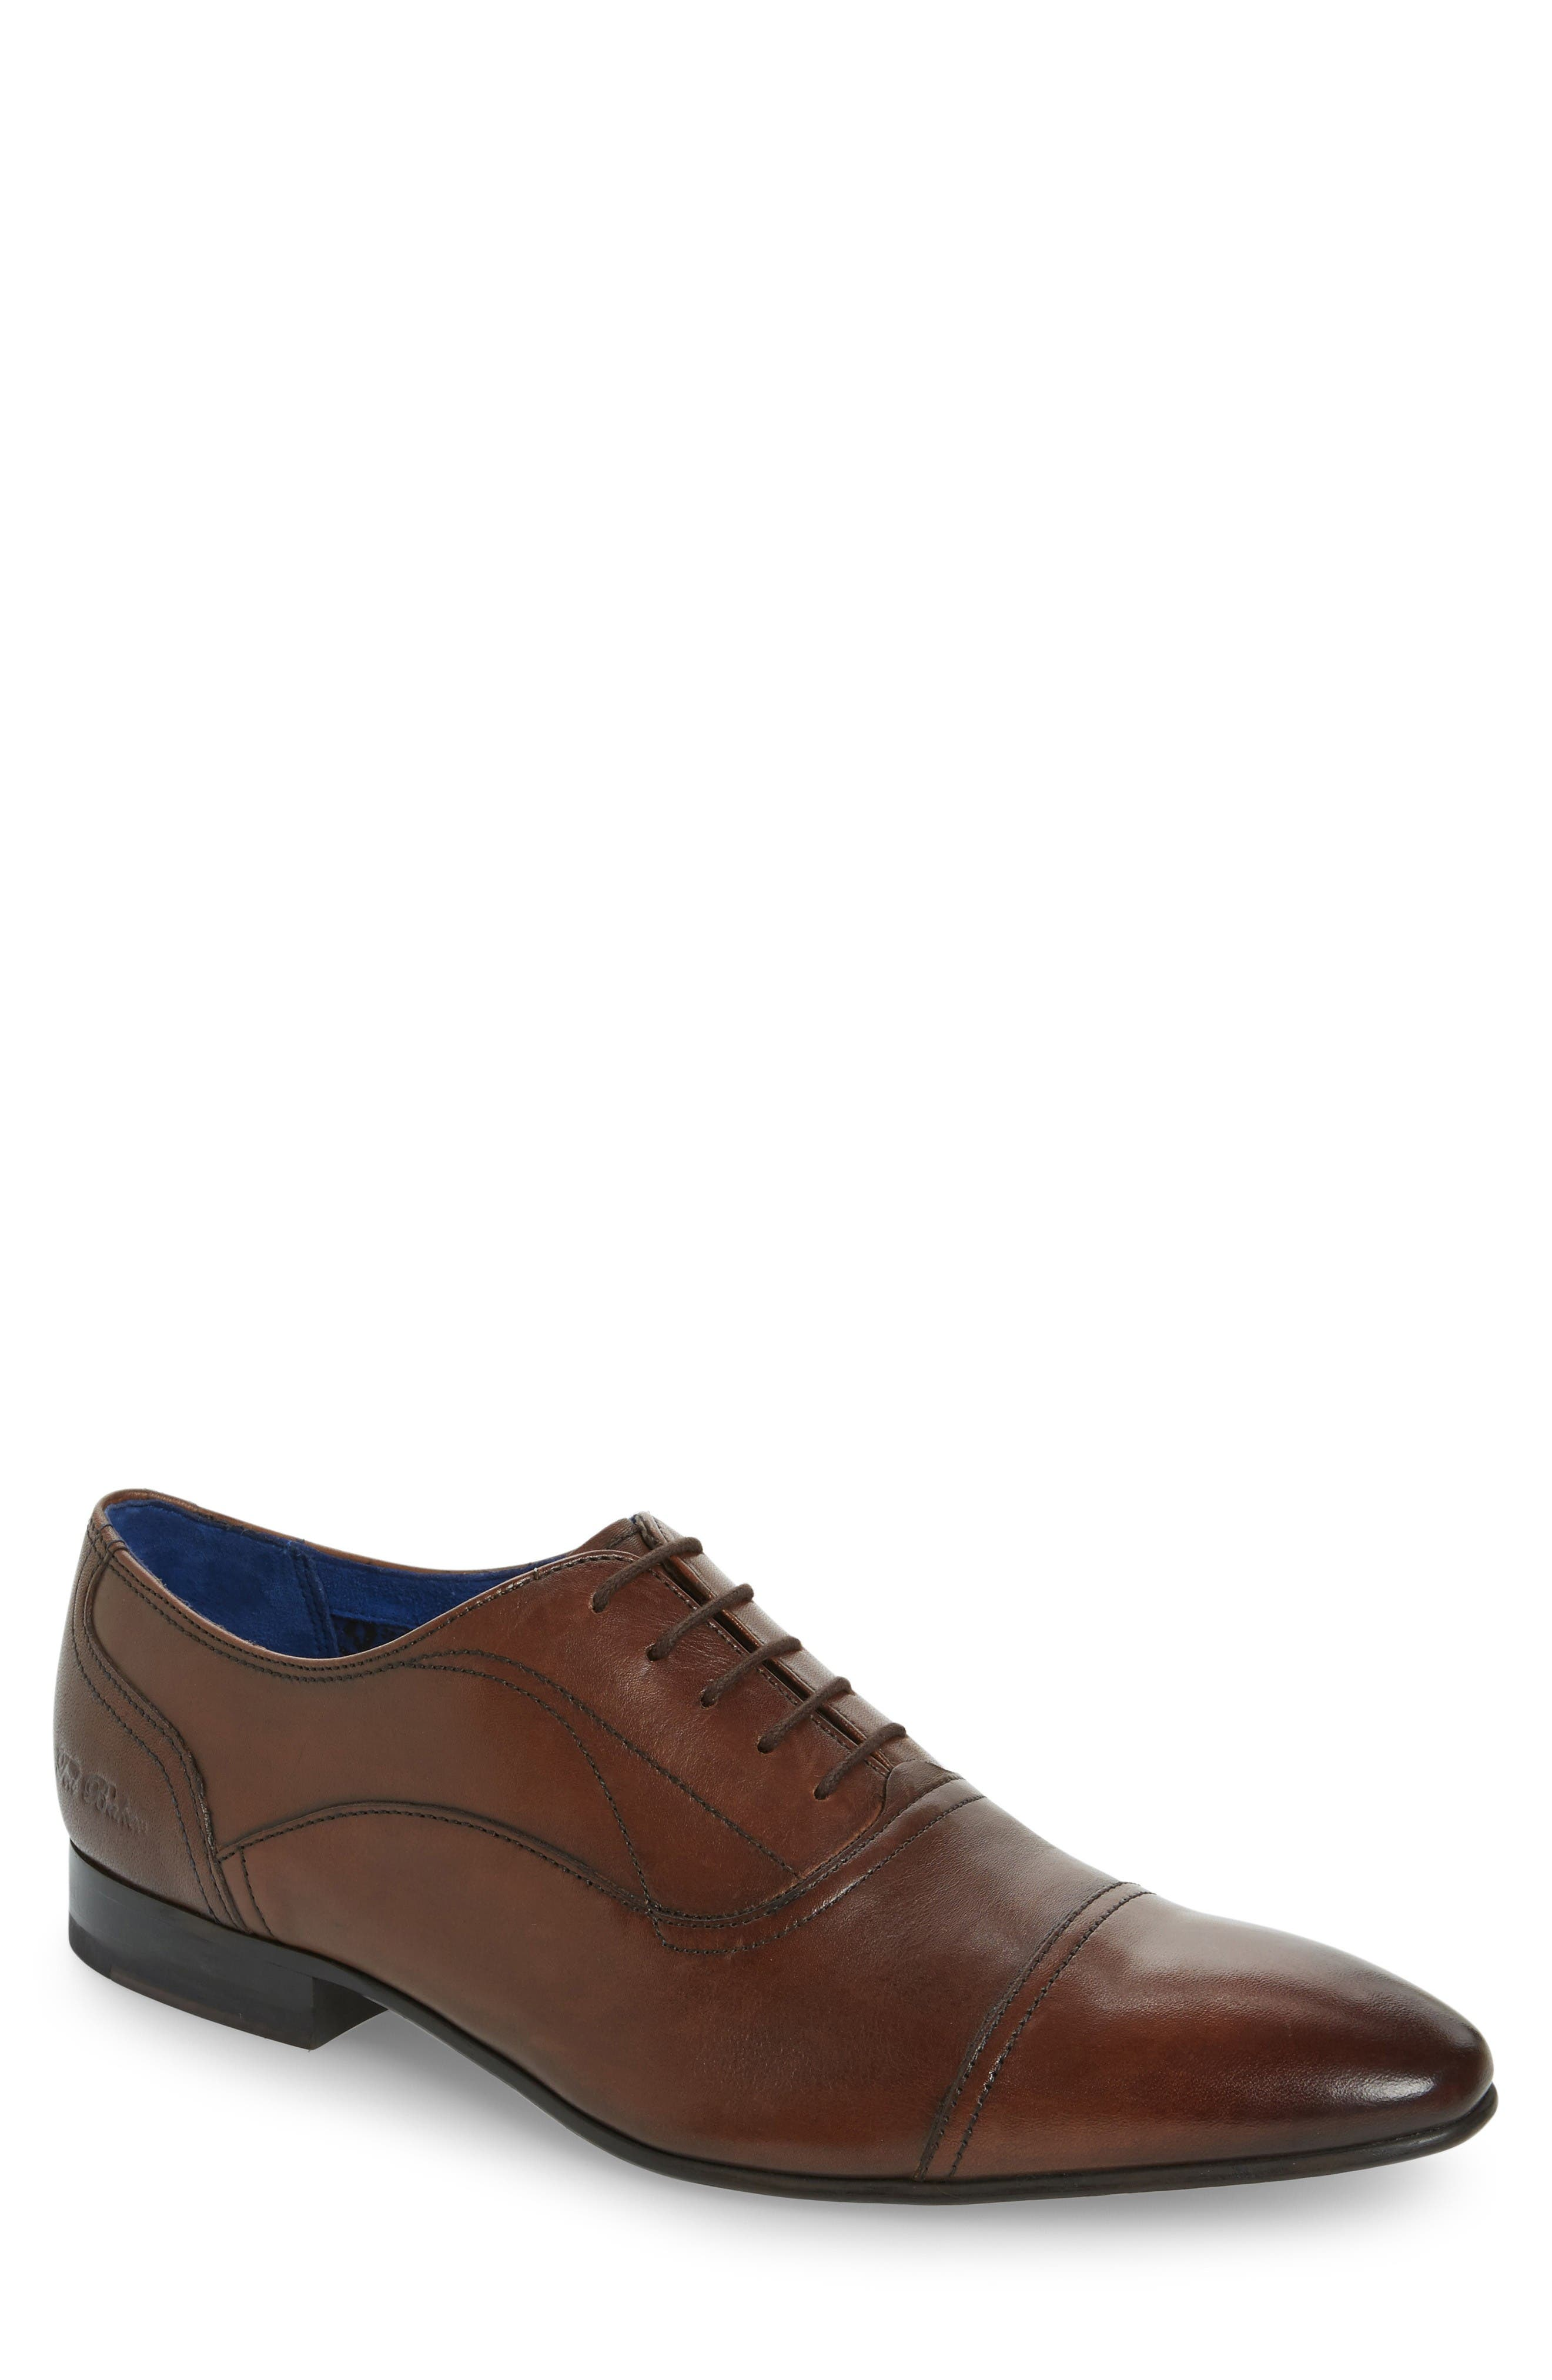 'Umbber' Cap Toe Oxford,                             Main thumbnail 1, color,                             Brown Leather